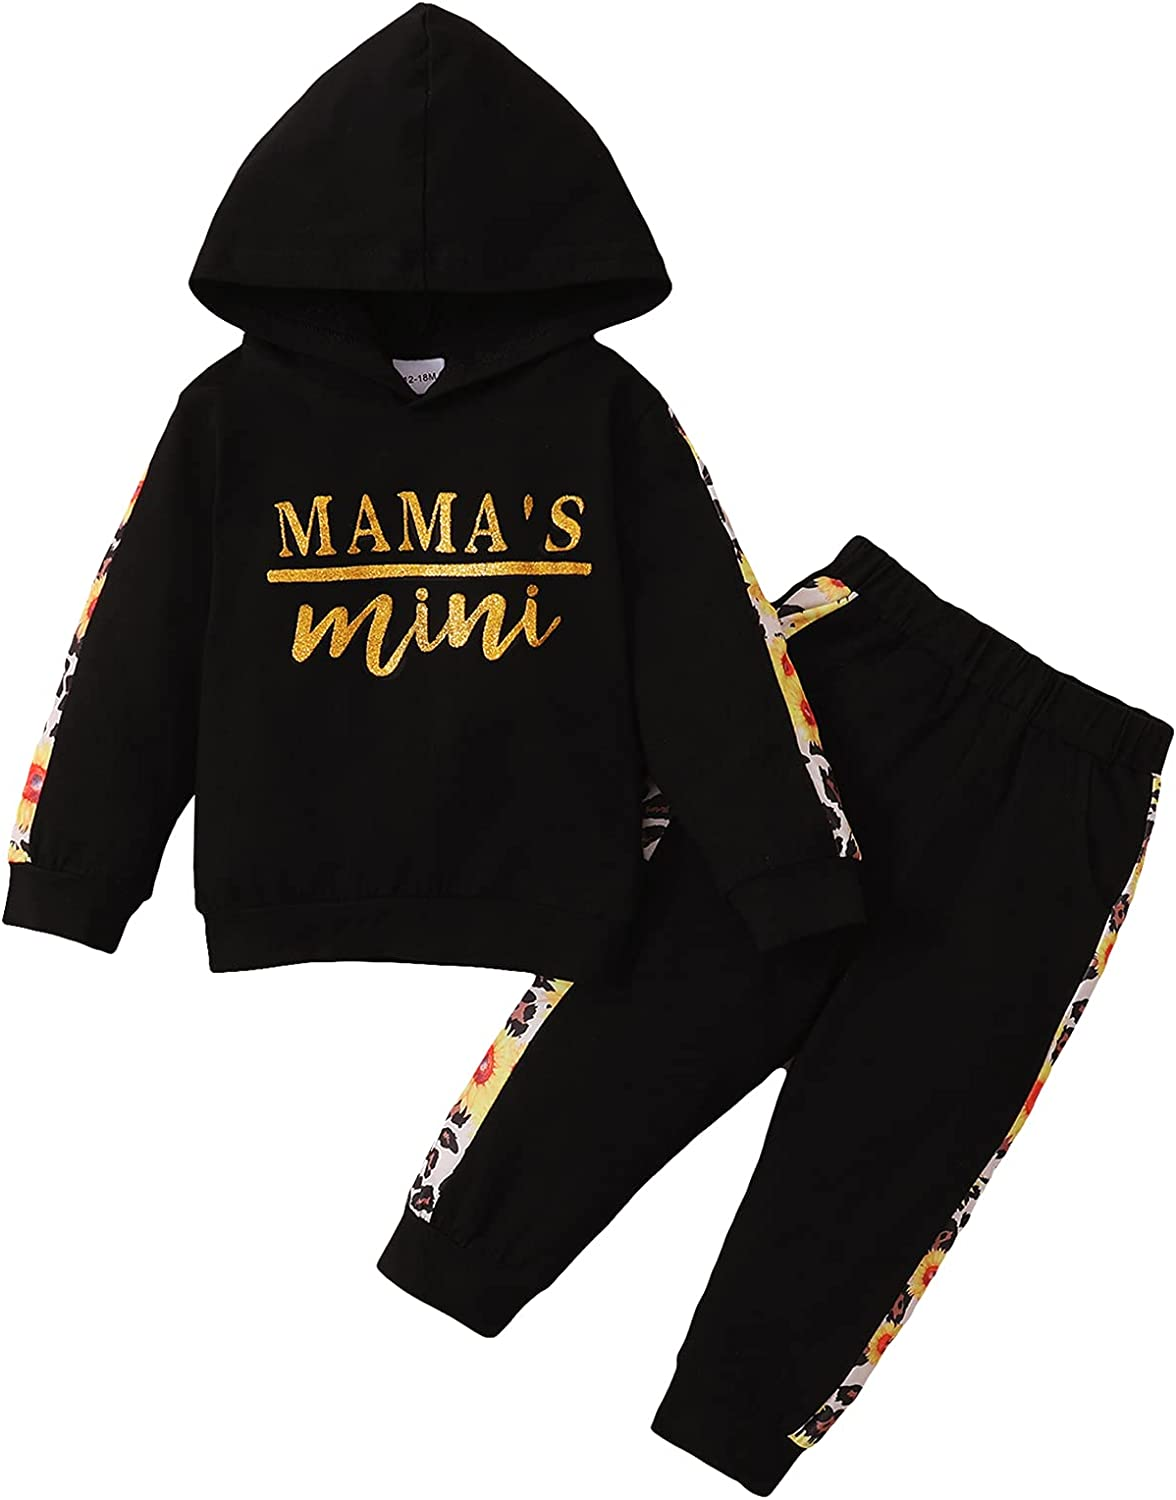 RomperinBox Toddler Baby Fall Outfits Printed Hoodie Sweatshirt Tops Pants Winter 2Pcs Tracksuit Clothes Set